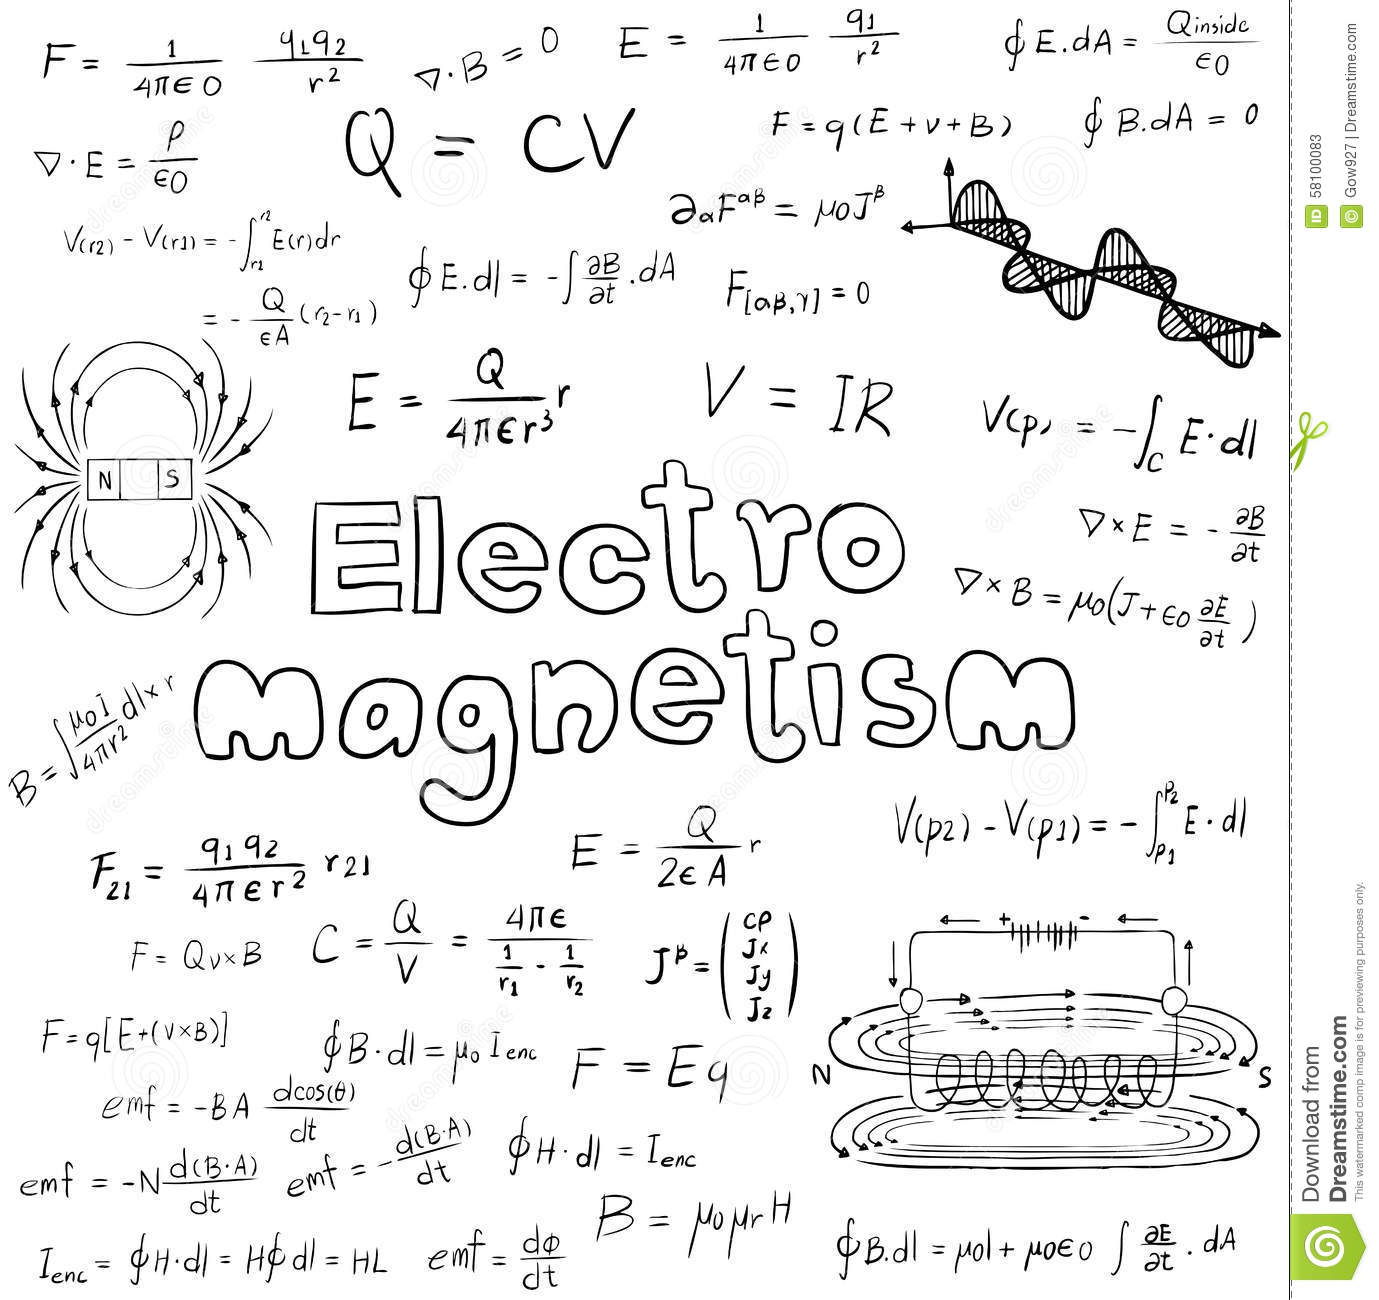 Electromagnetism Electric Magnetic Law Theory And Physics ...